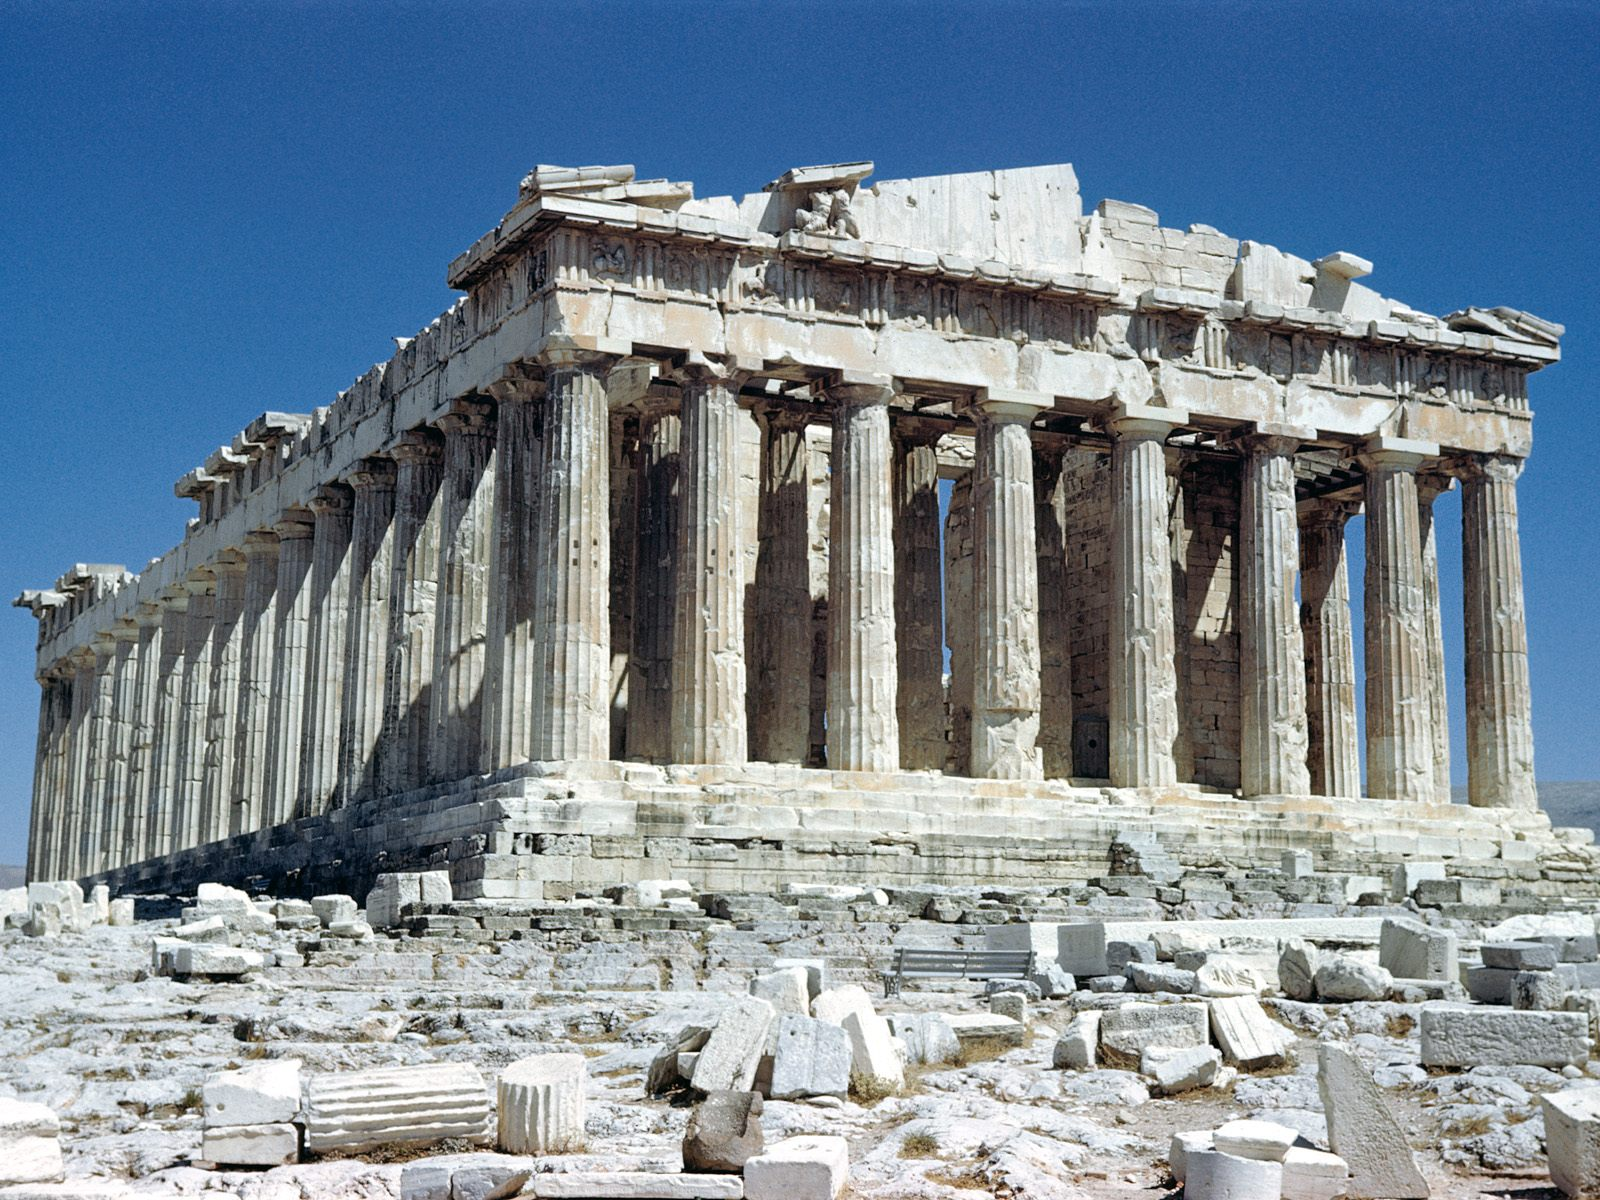 The Parthenon Acropolis 1600 x 1200